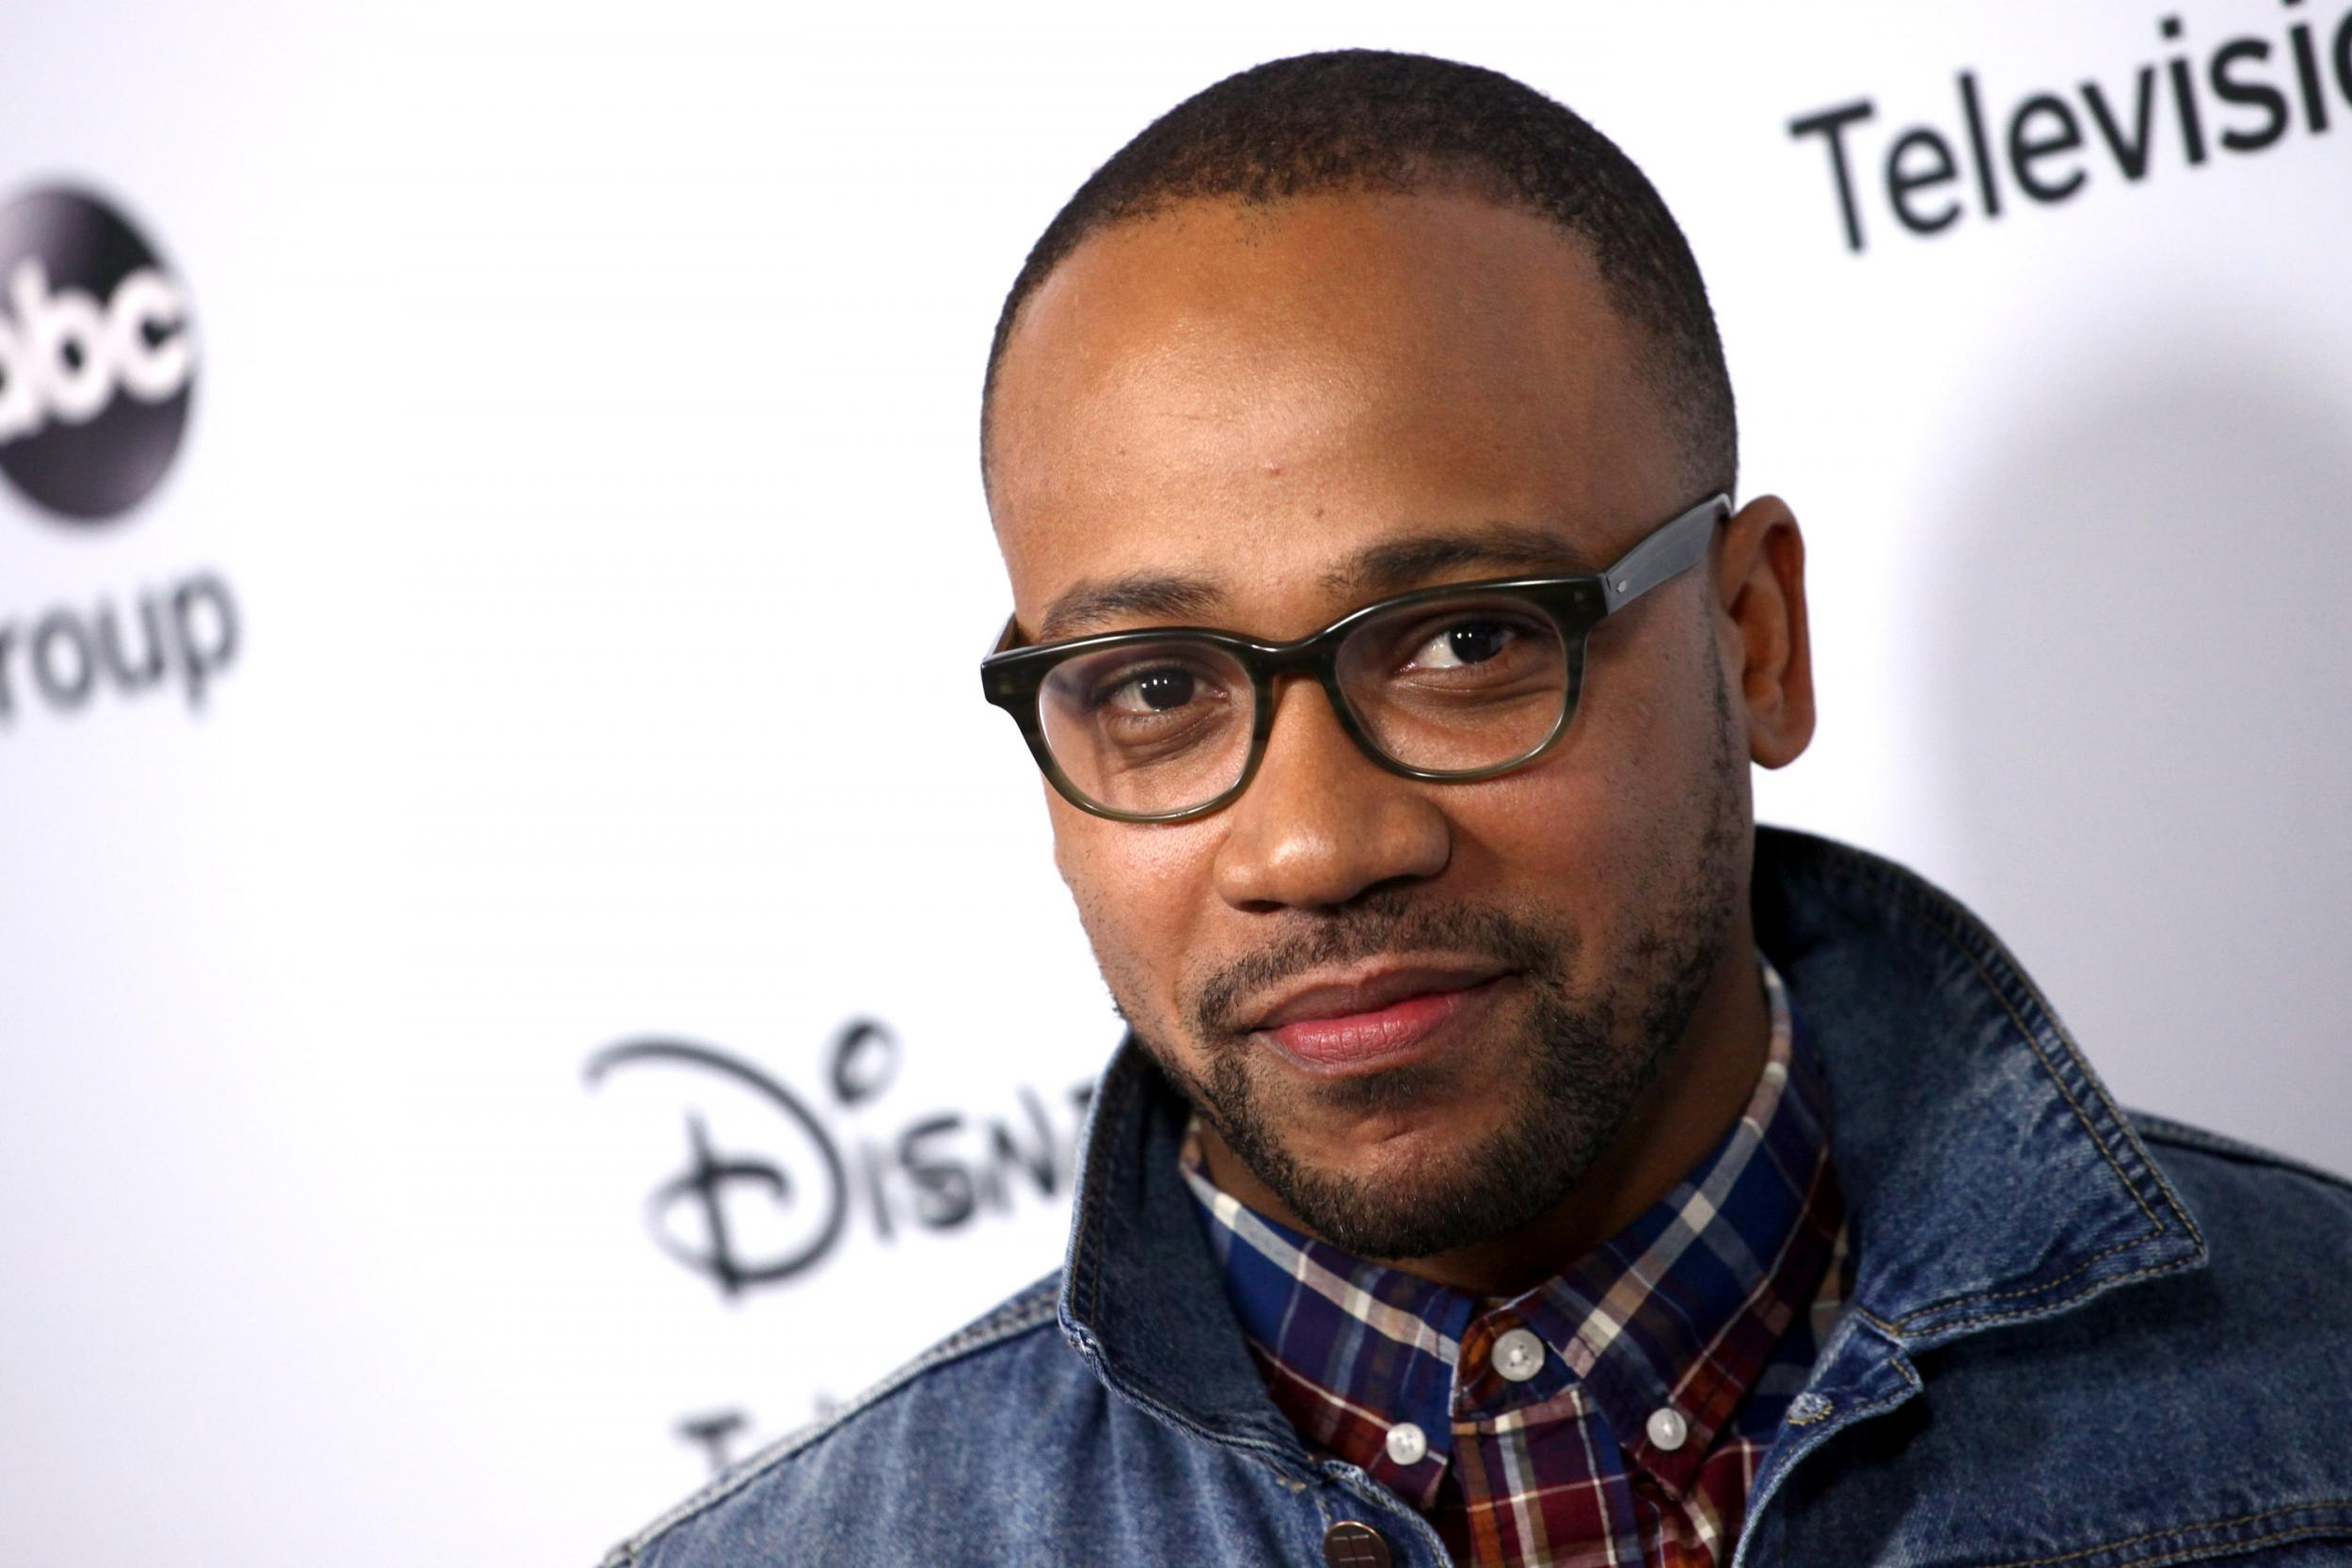 columbus short - latest news, breaking stories and comment - The Independent